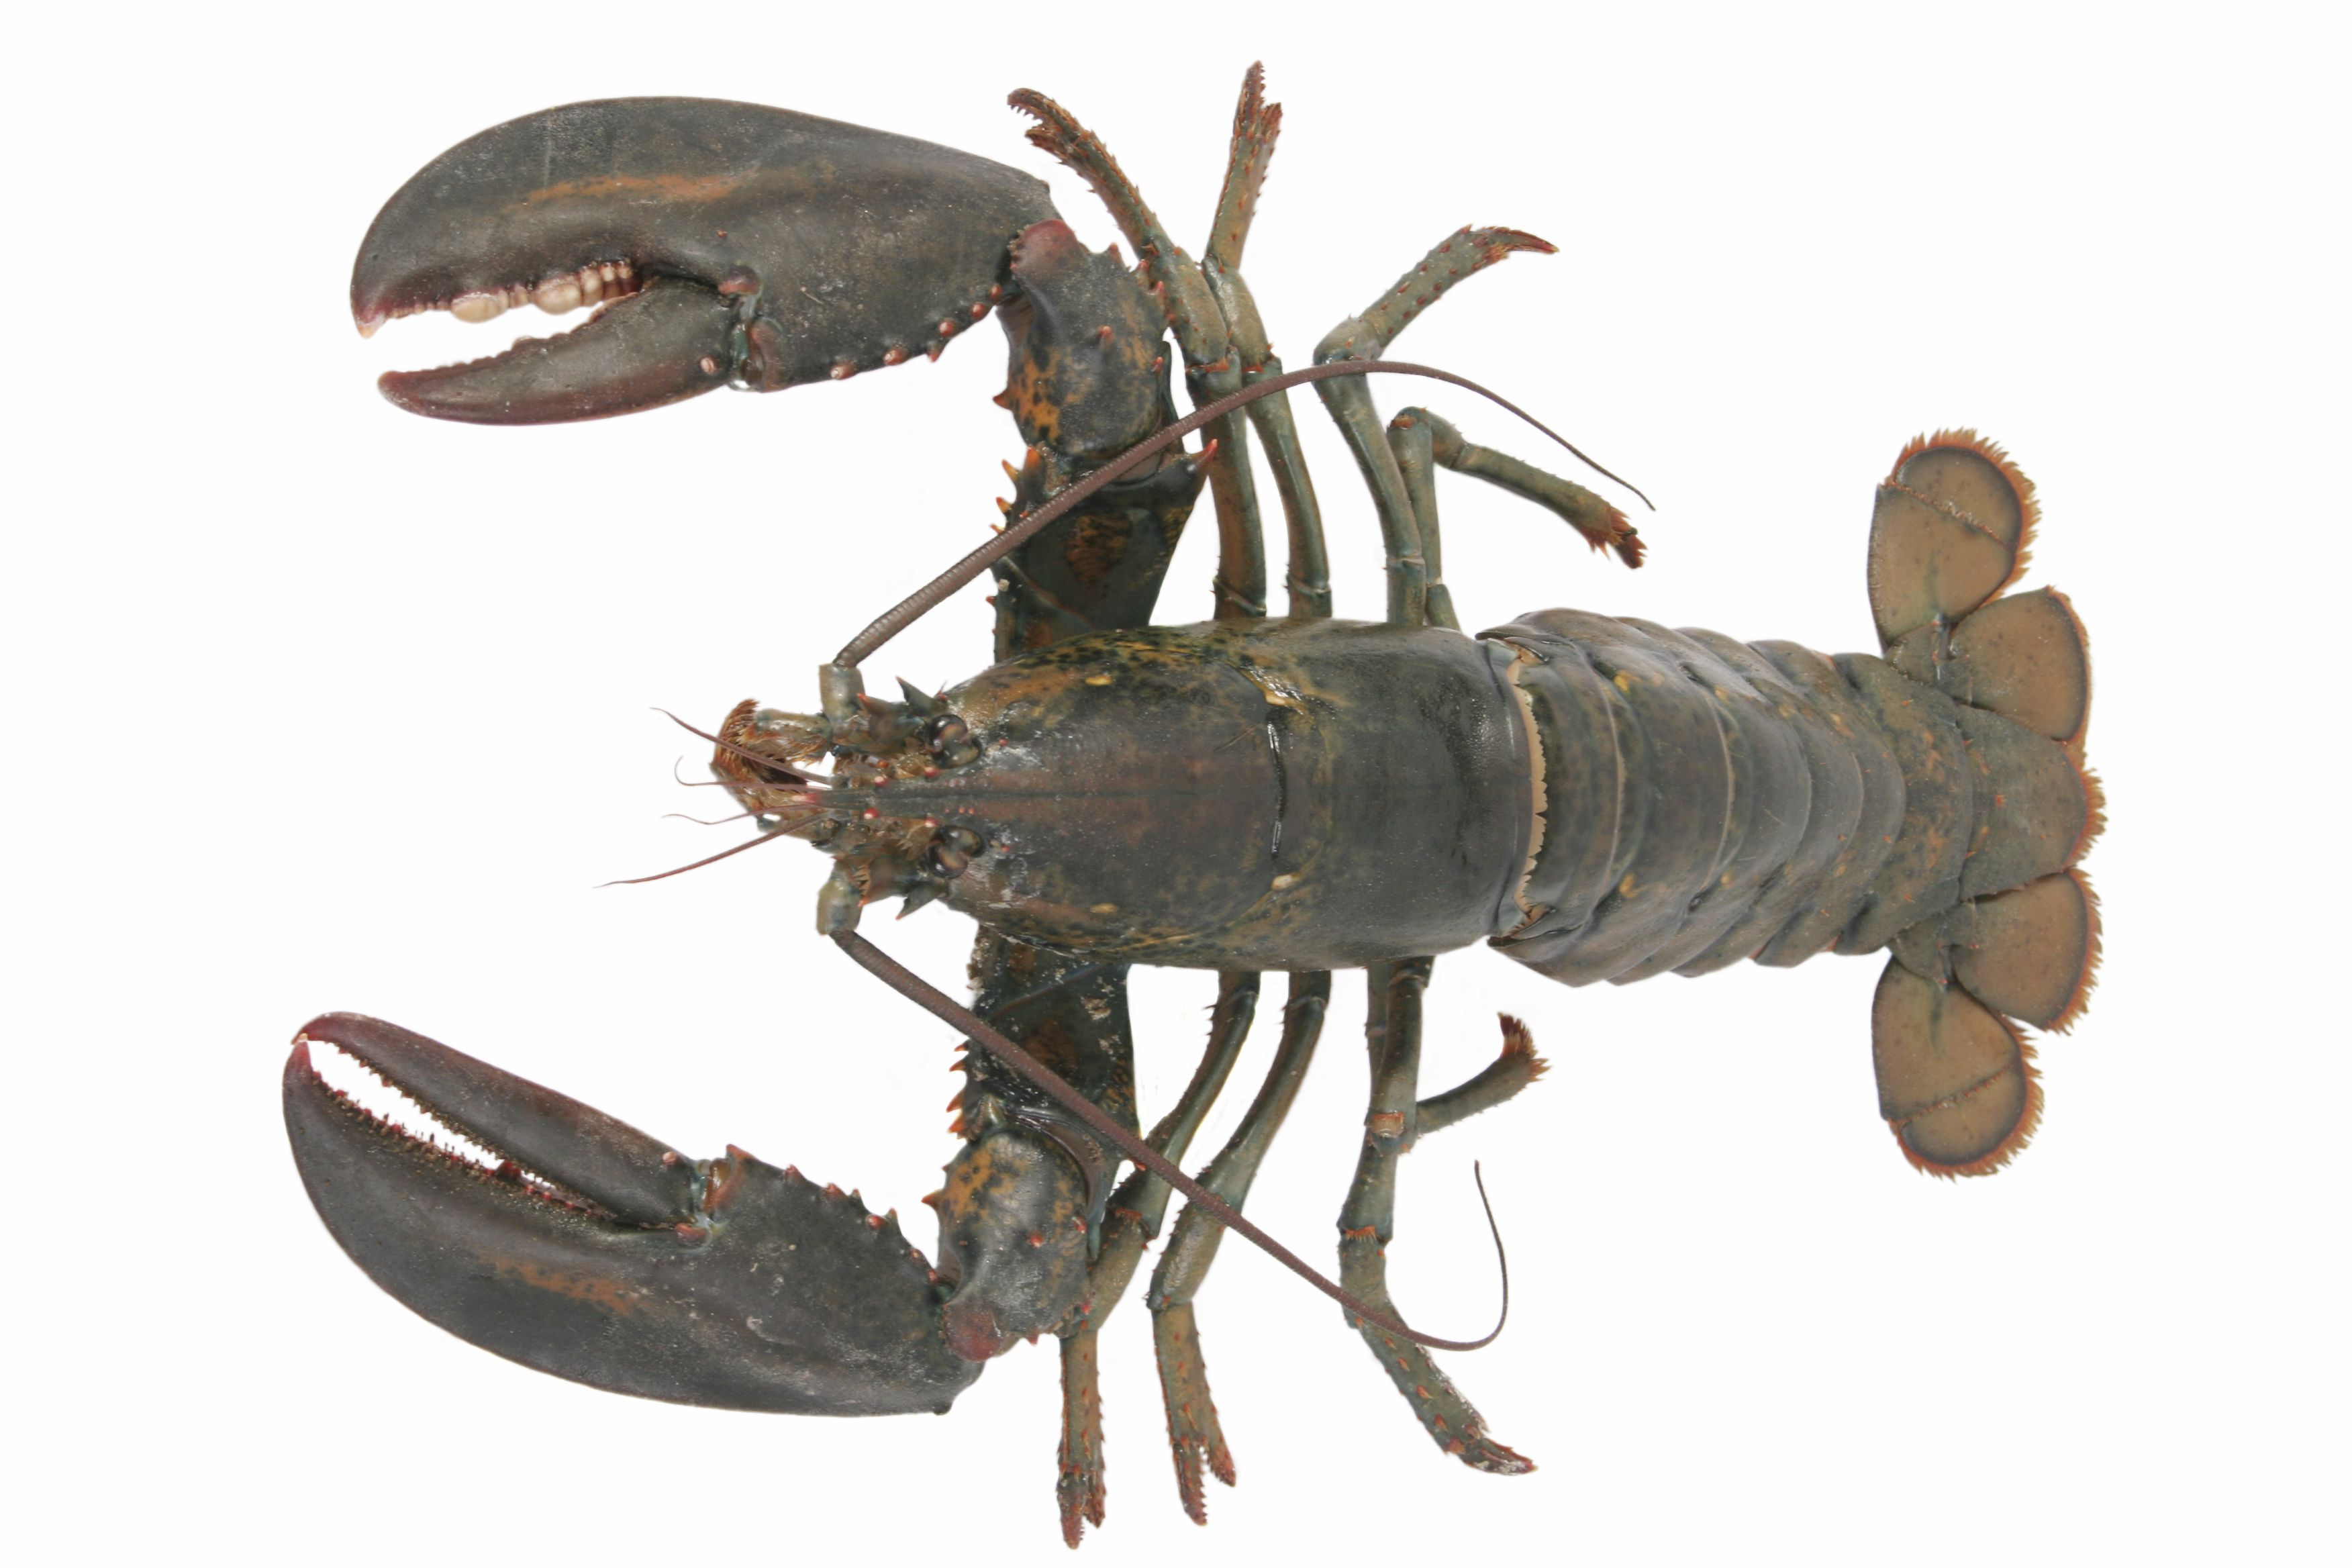 American Lobster Facts